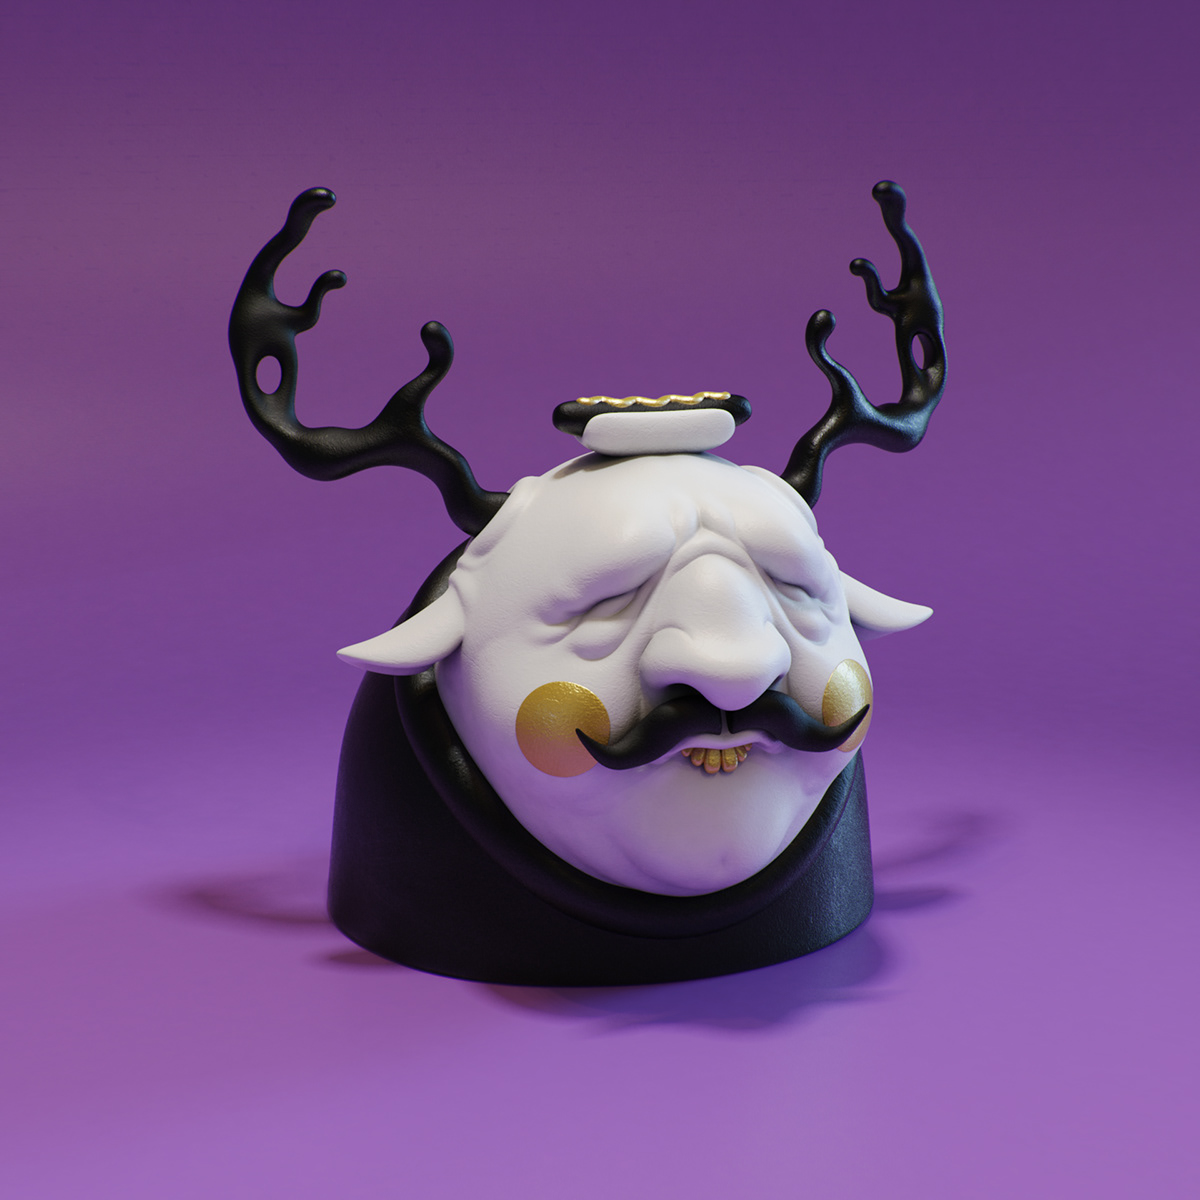 Curious sculptures by @rwr2 — see more figurines by Rodrigo >